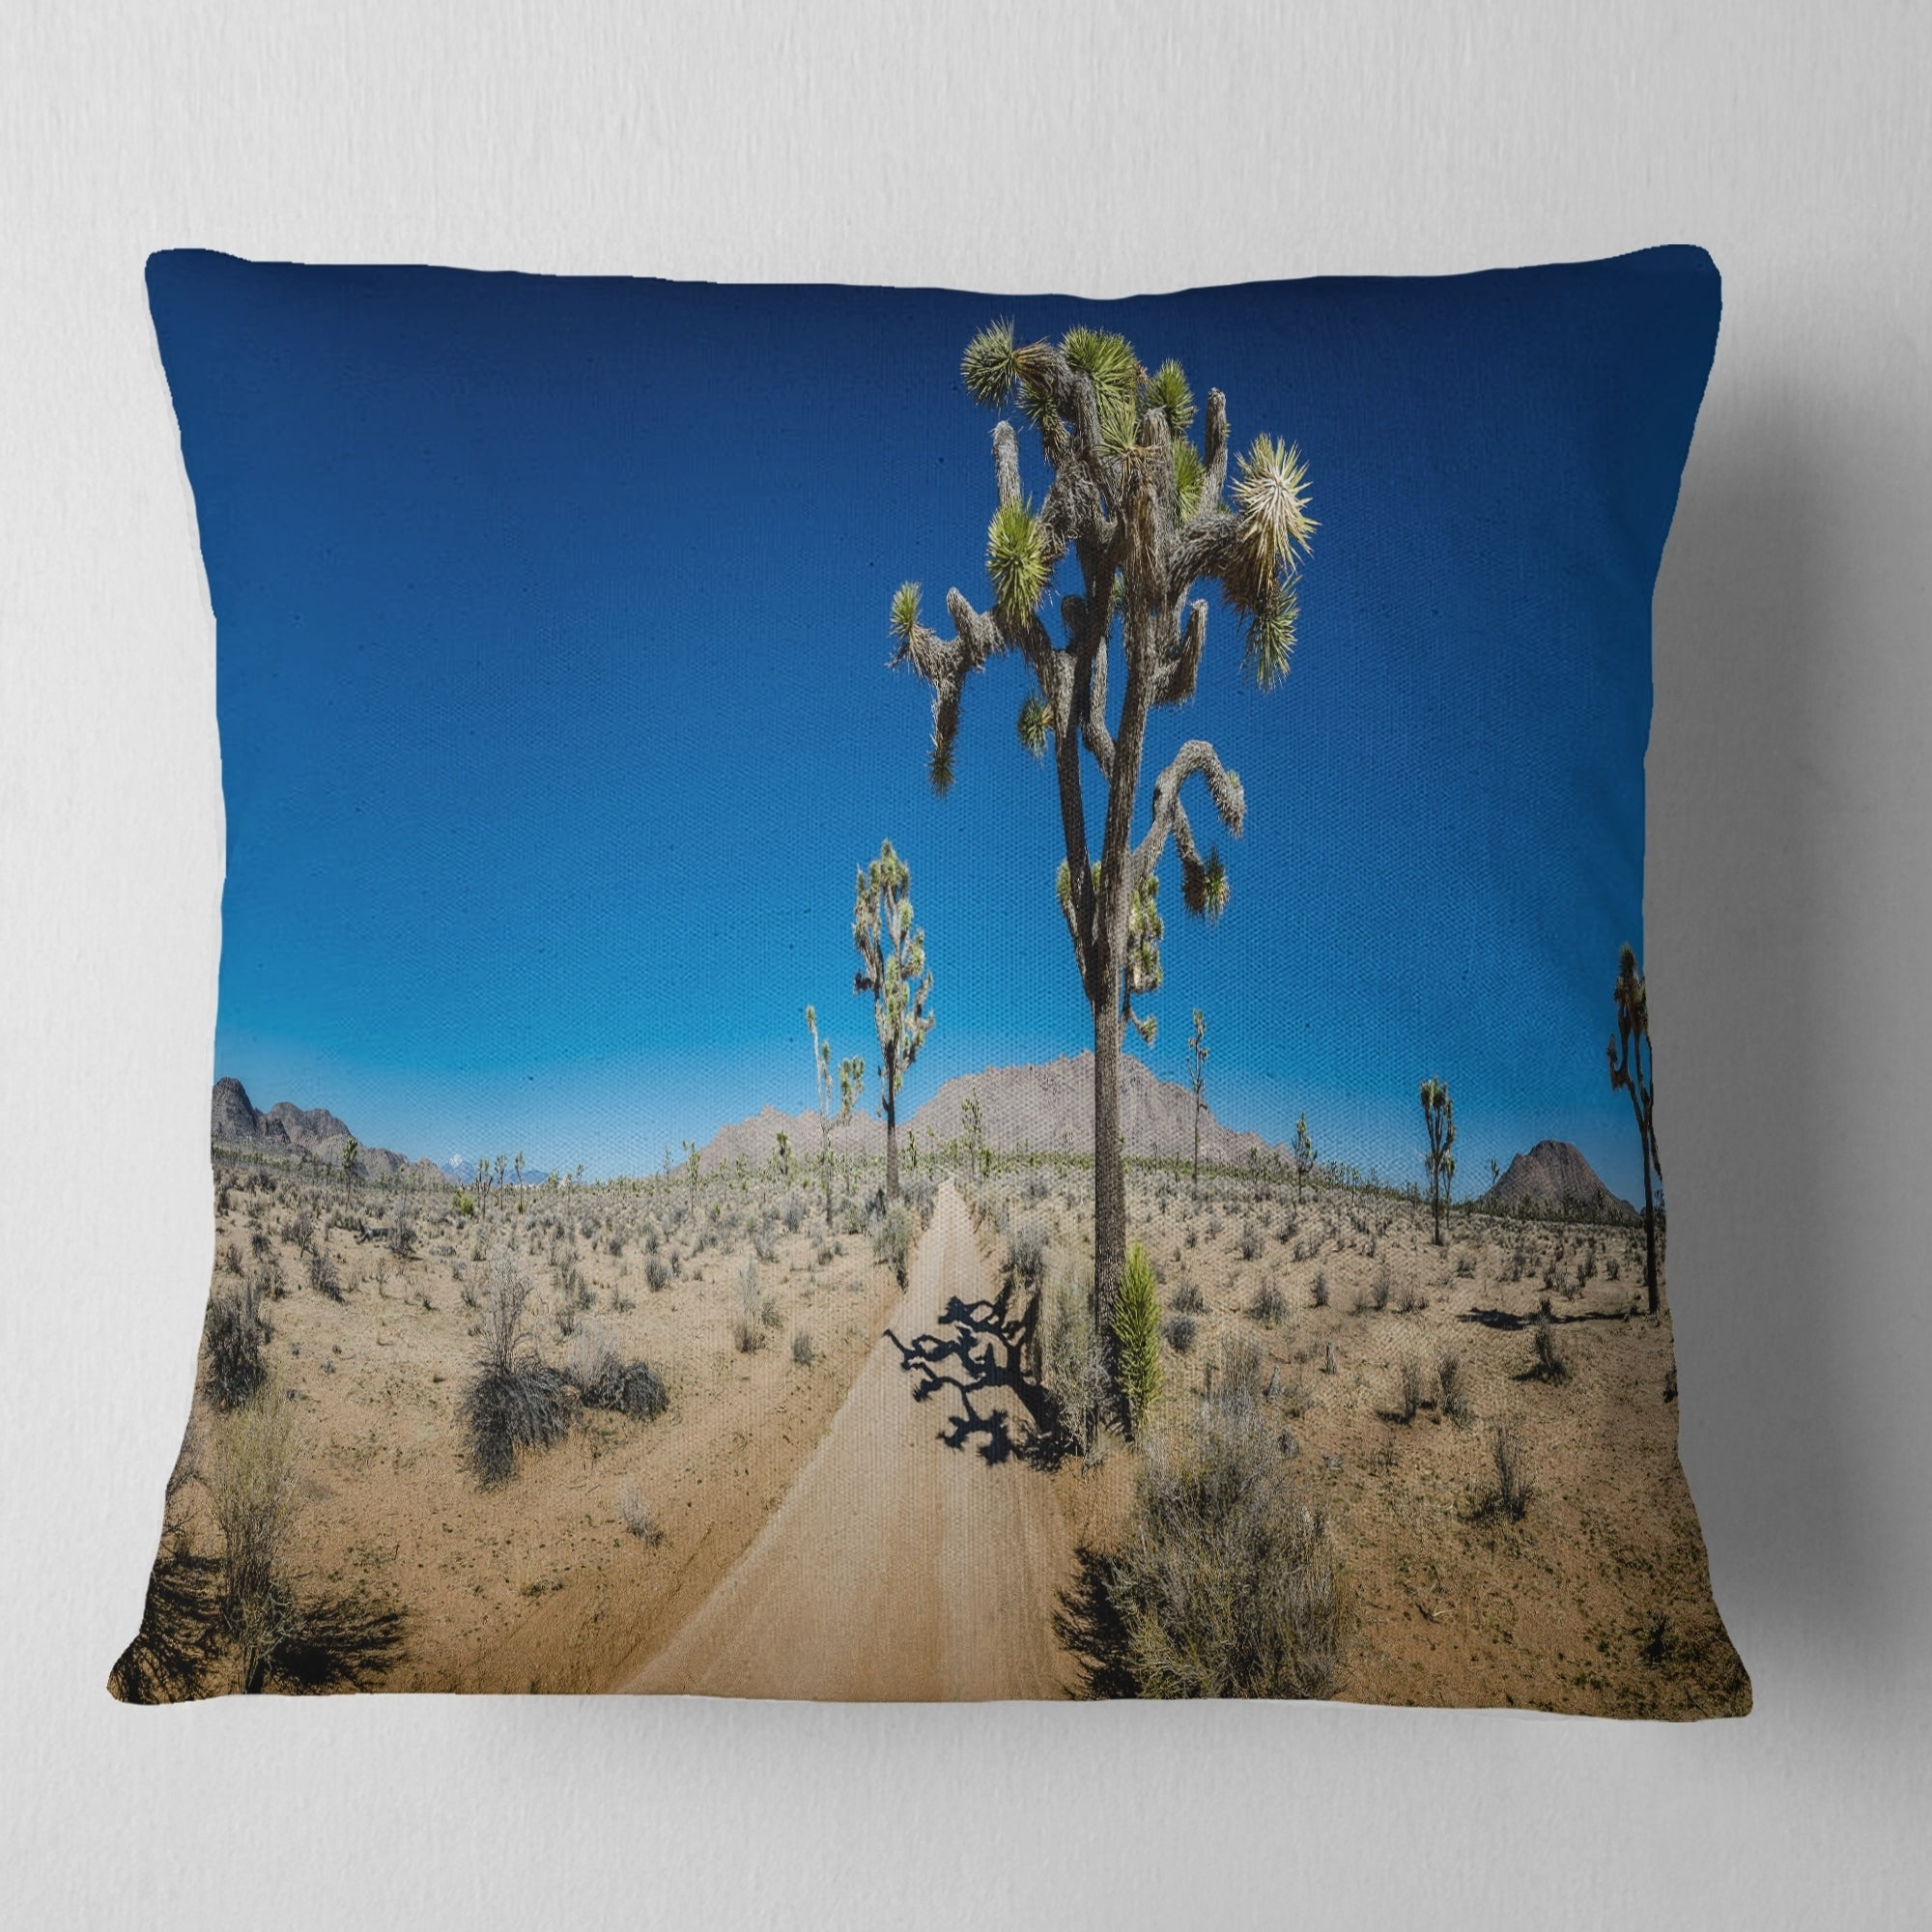 Designart Sandy Desert Road Panorama Landscape Wall Throw Pillow On Sale Overstock 20944731